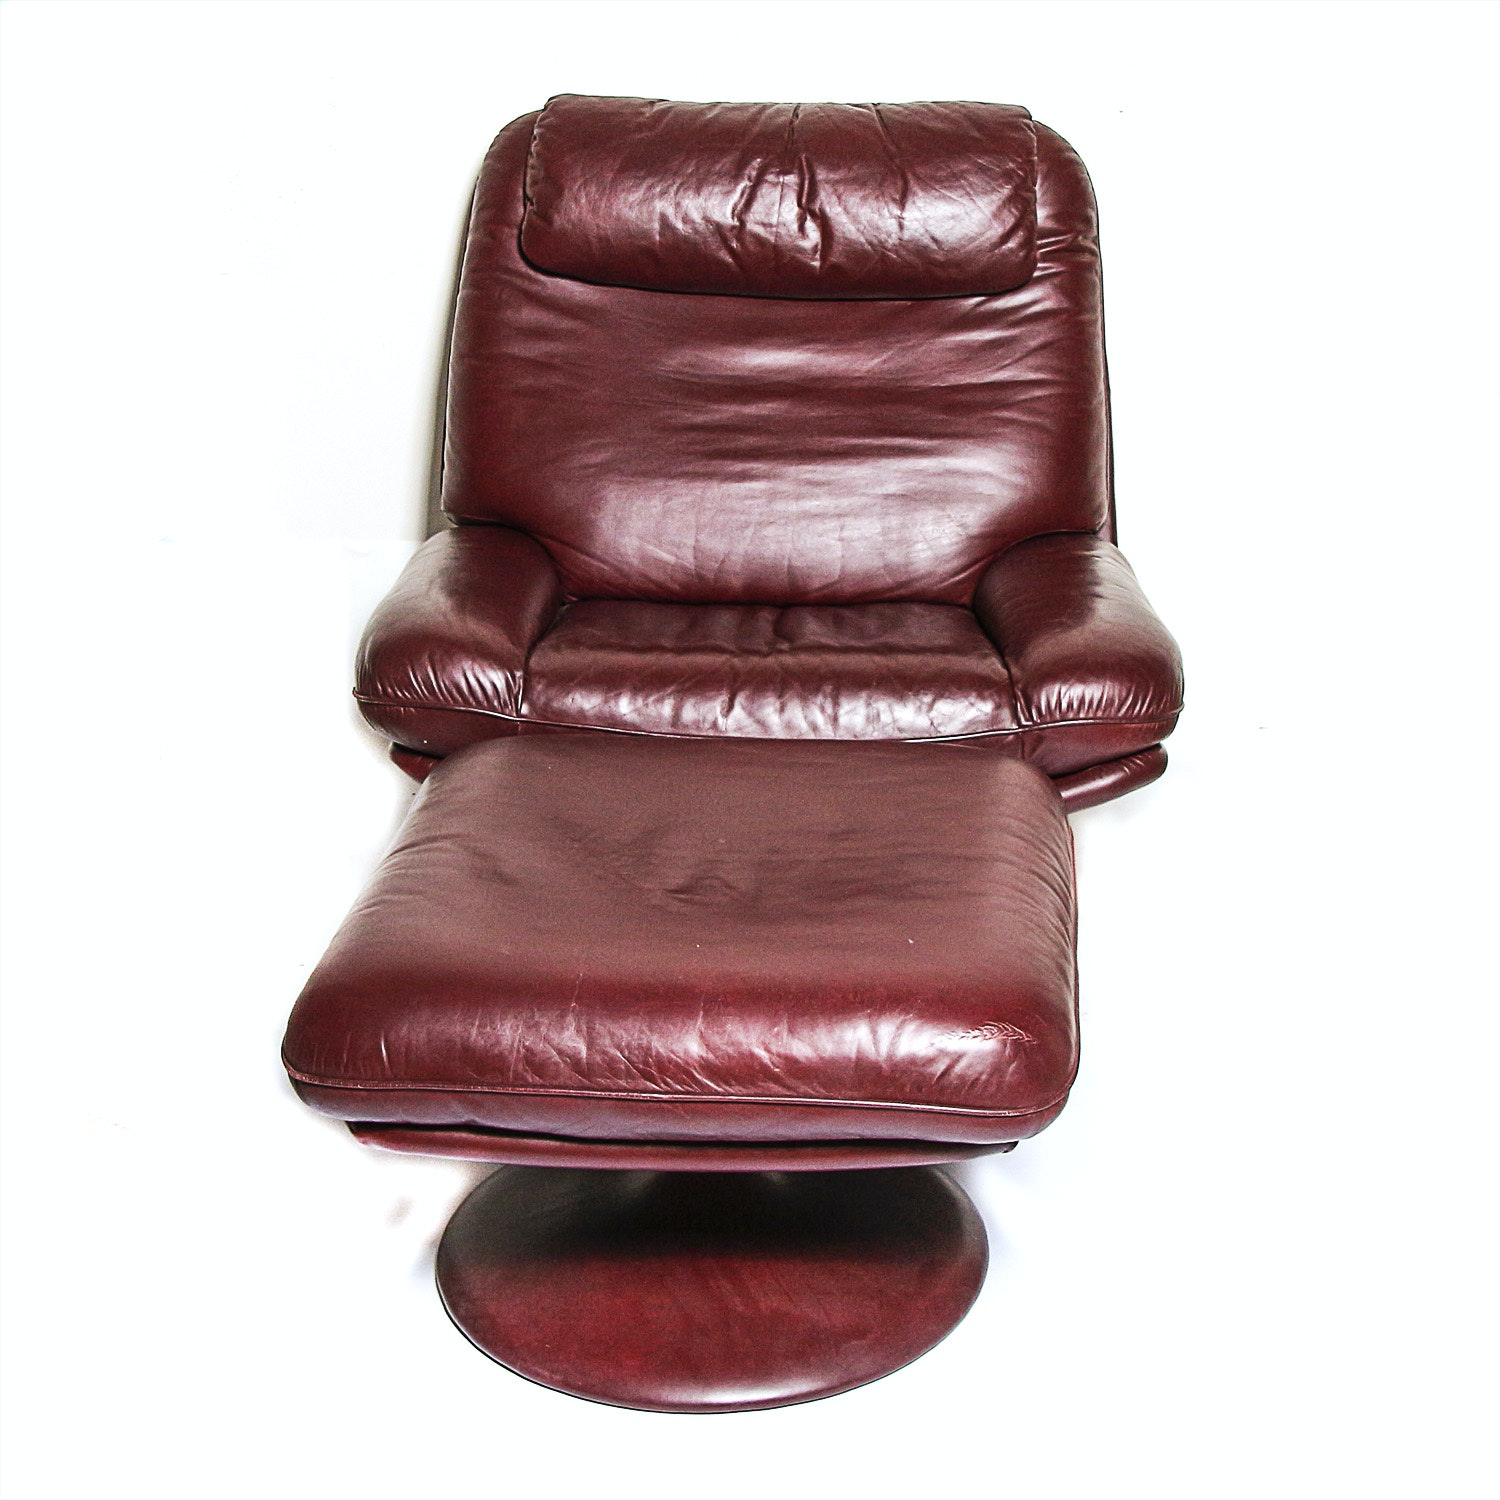 Vintage De Sede Of Switzerland Leather Swivel Chair With Ottoman ...